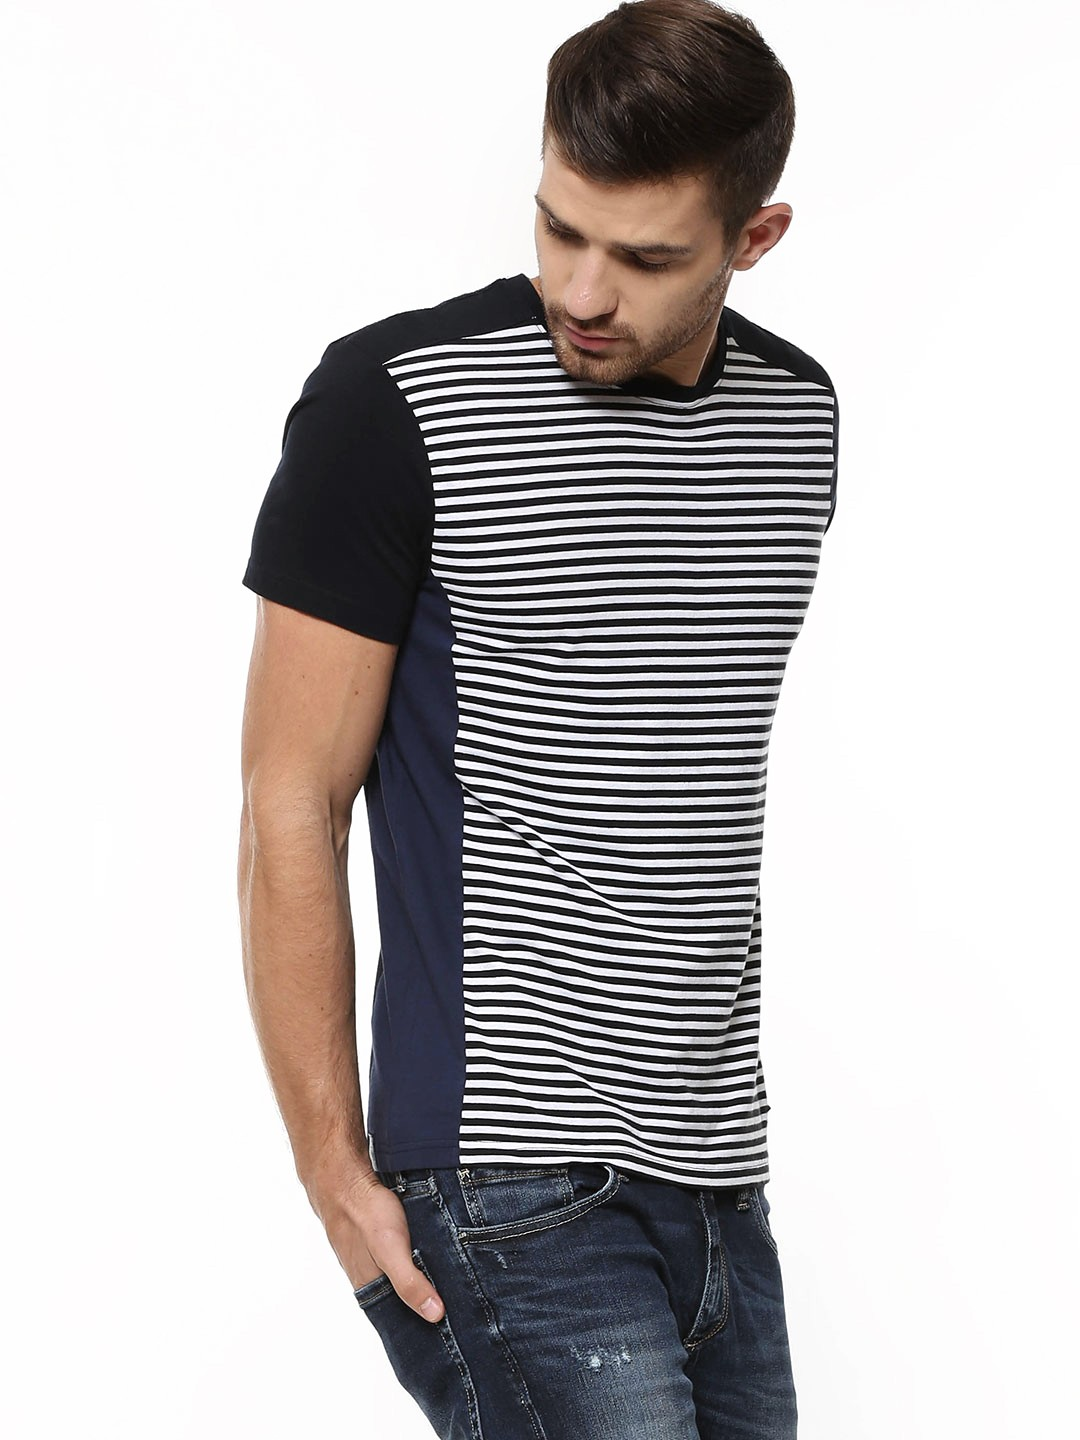 Buy being human striped panel t shirt with contrast back for Being human t shirts buy online india